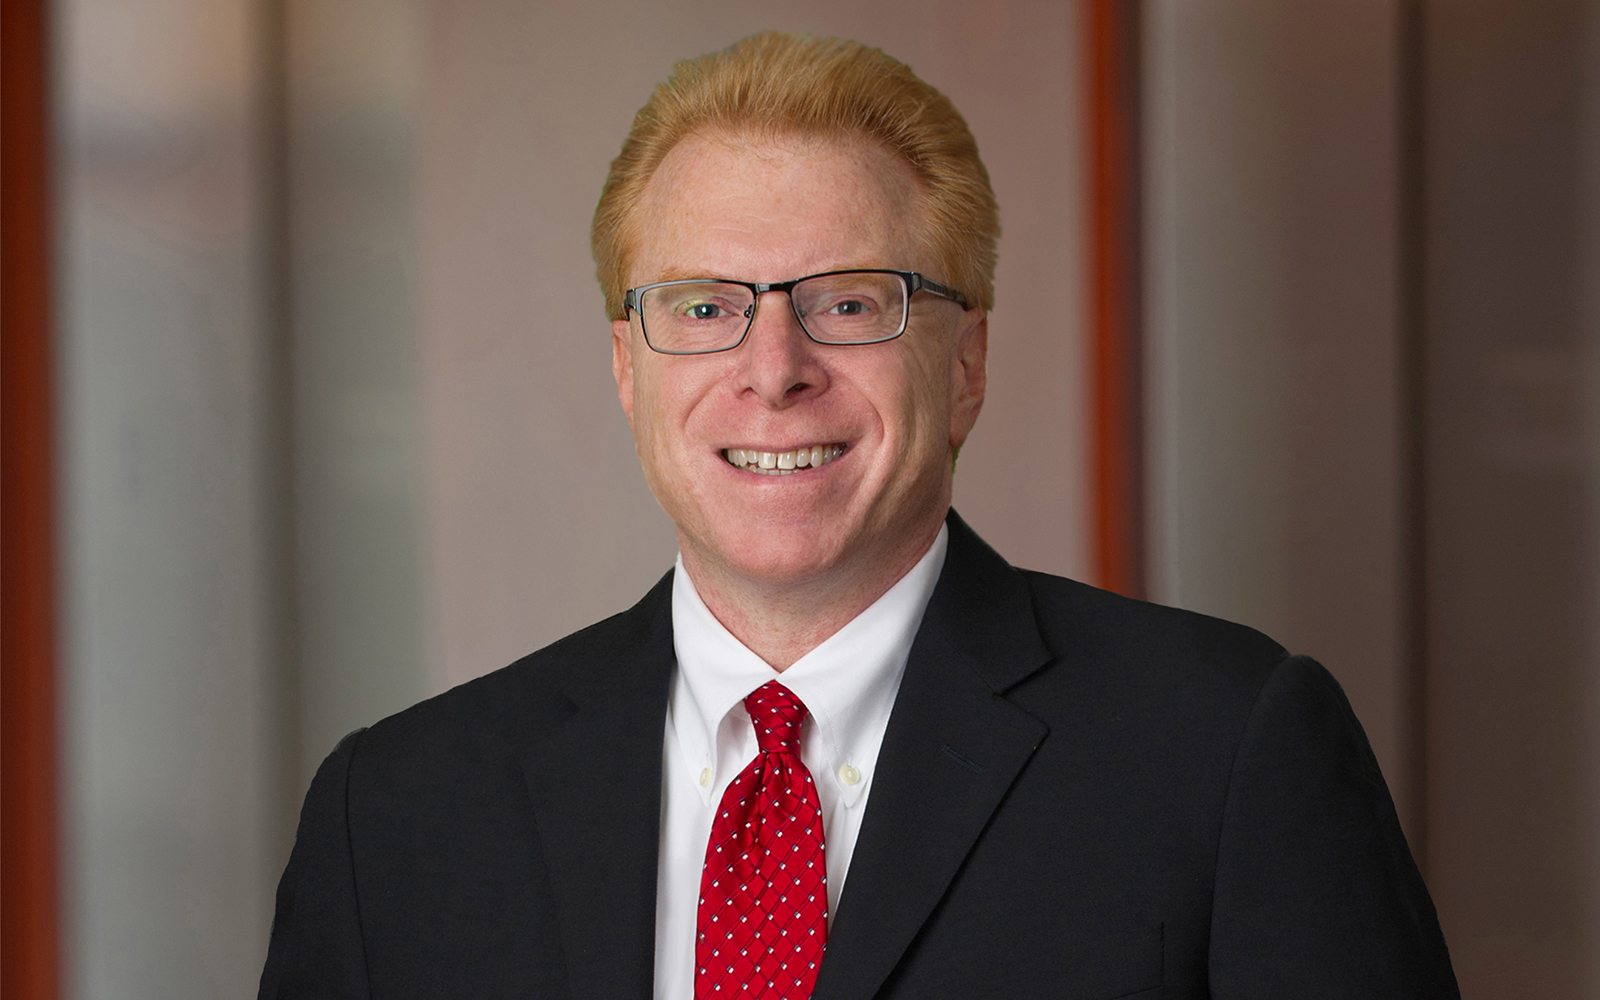 We Are Honored To Welcome Steven B. Vinick